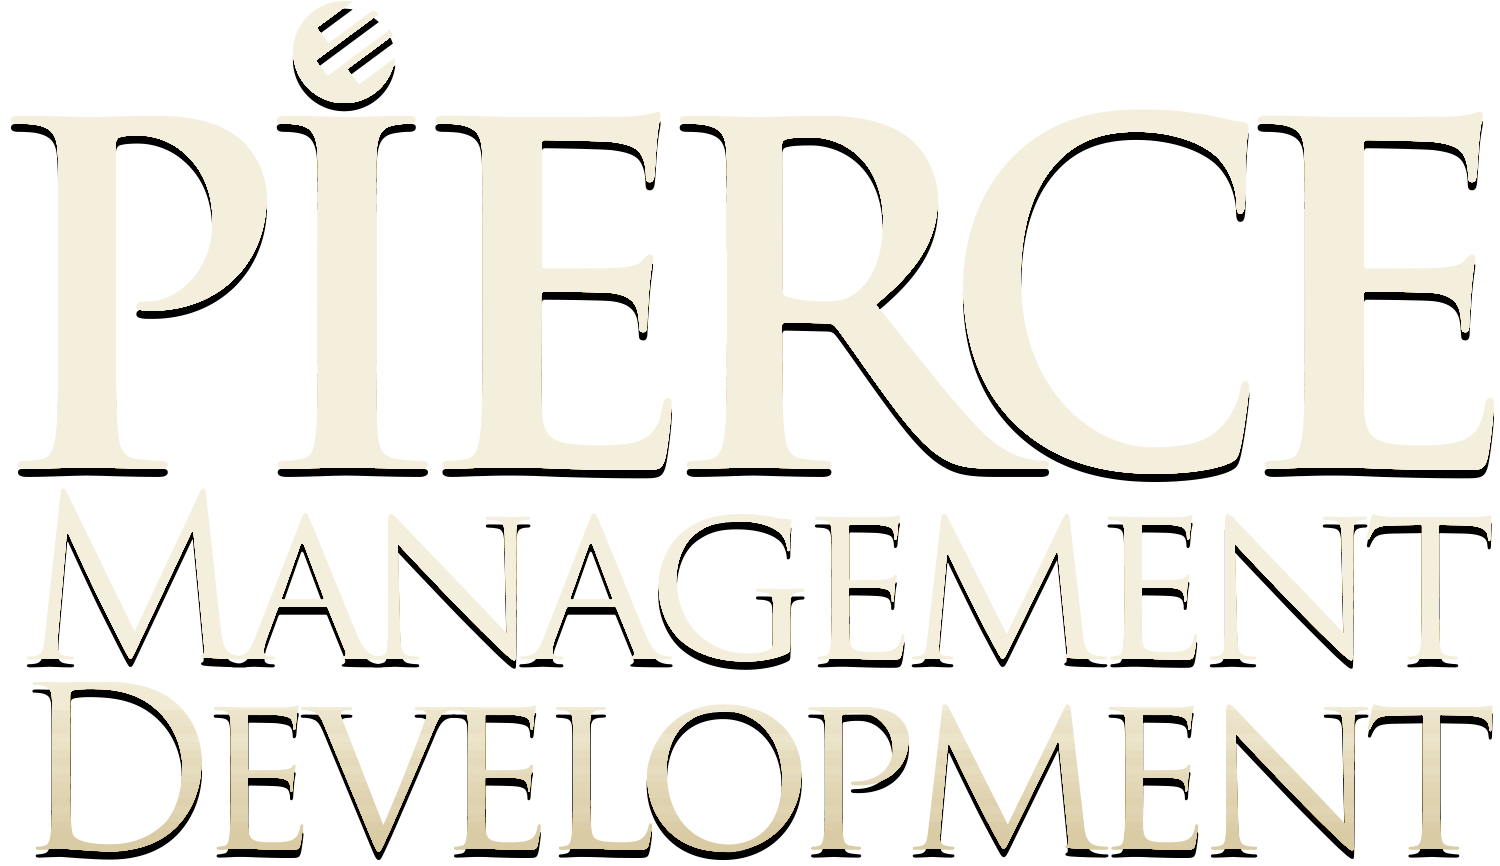 Pierce Management Development